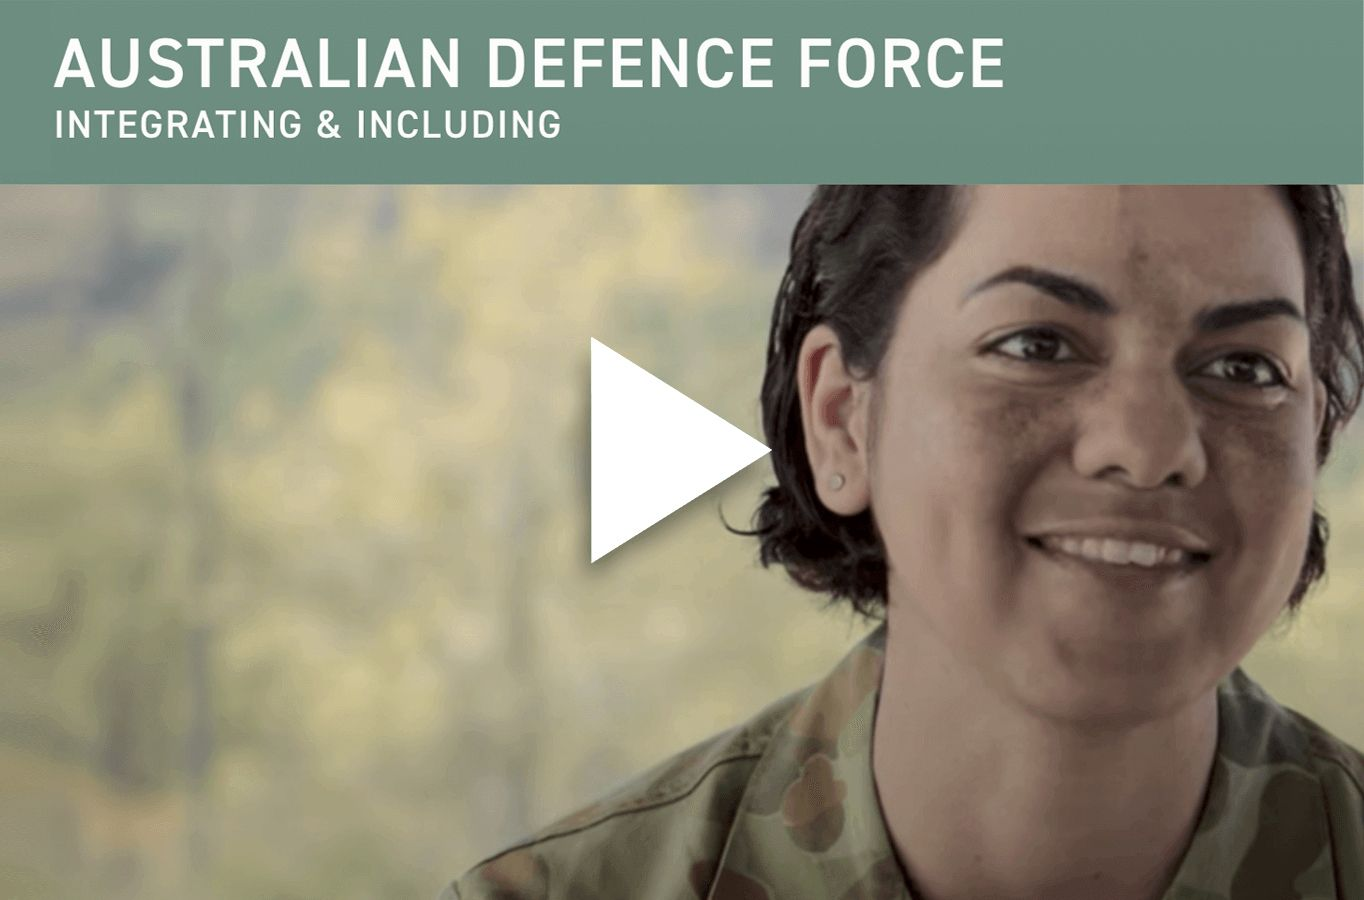 Australian Defence Force Integrating & Including video